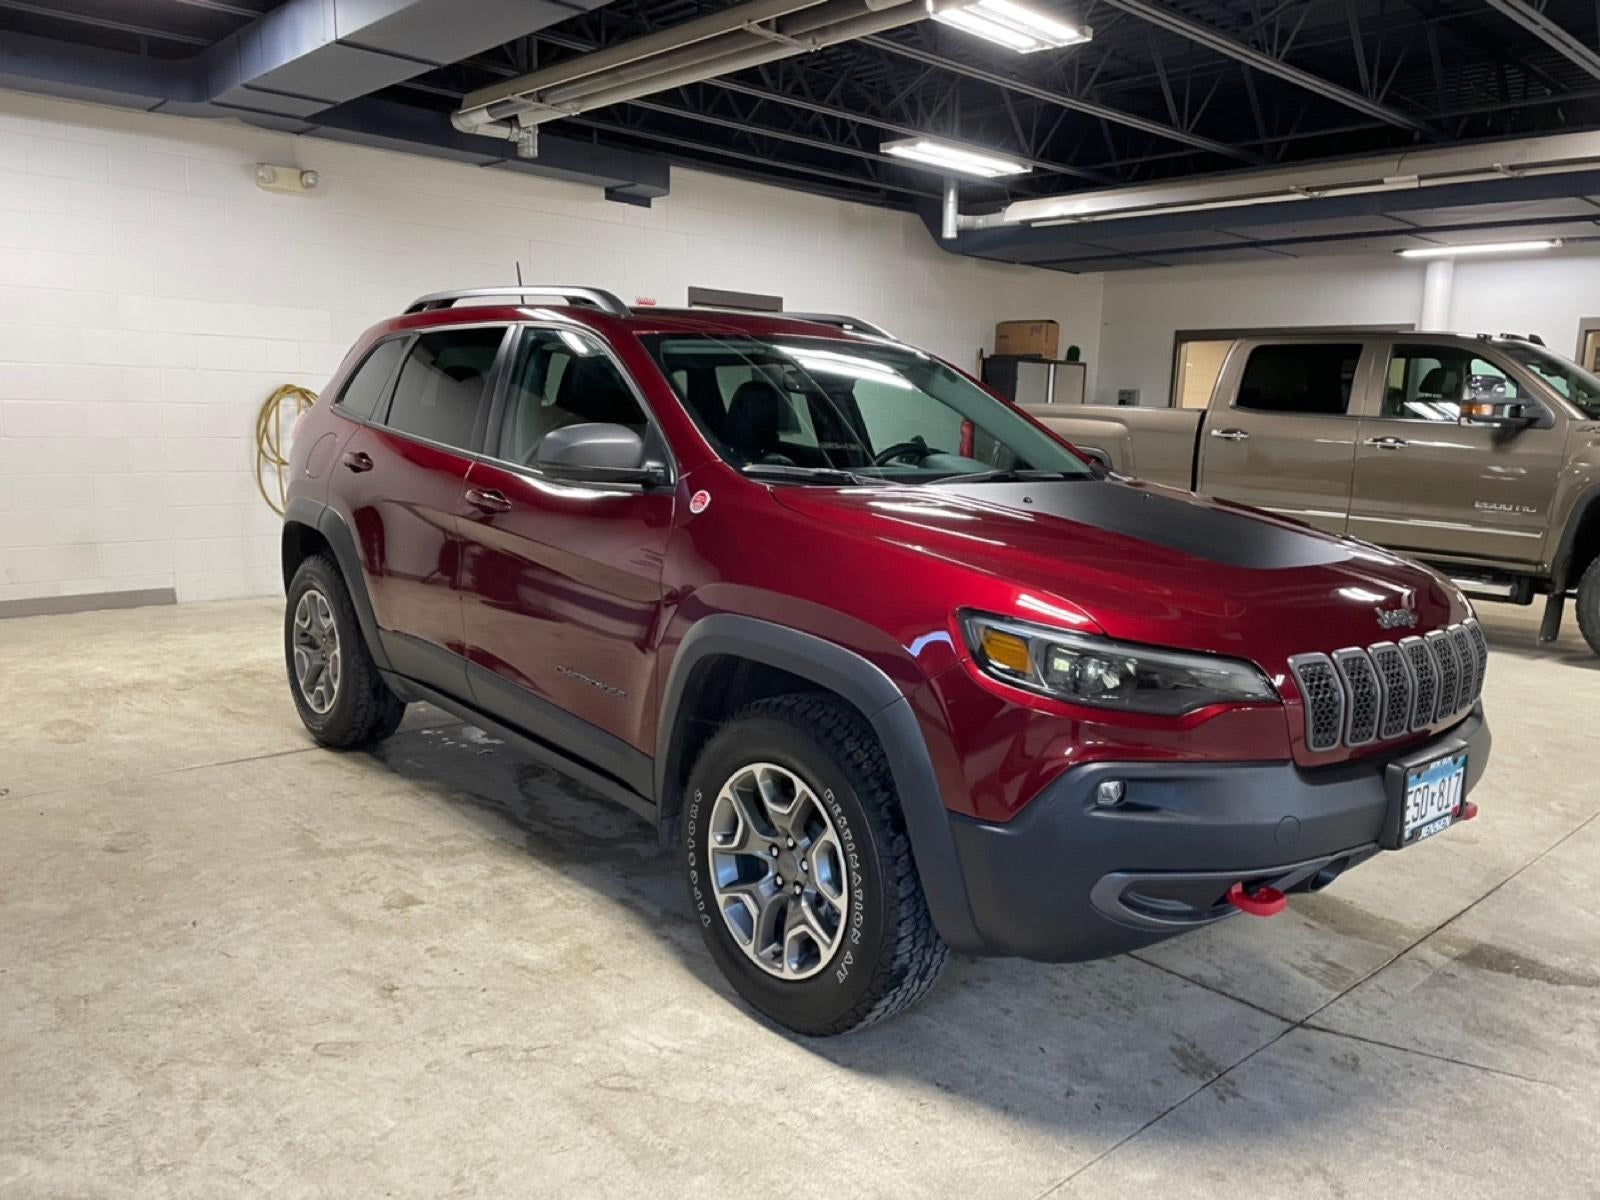 Certified 2021 Jeep Cherokee Trailhawk with VIN 1C4PJMBX7MD137545 for sale in New Ulm, Minnesota